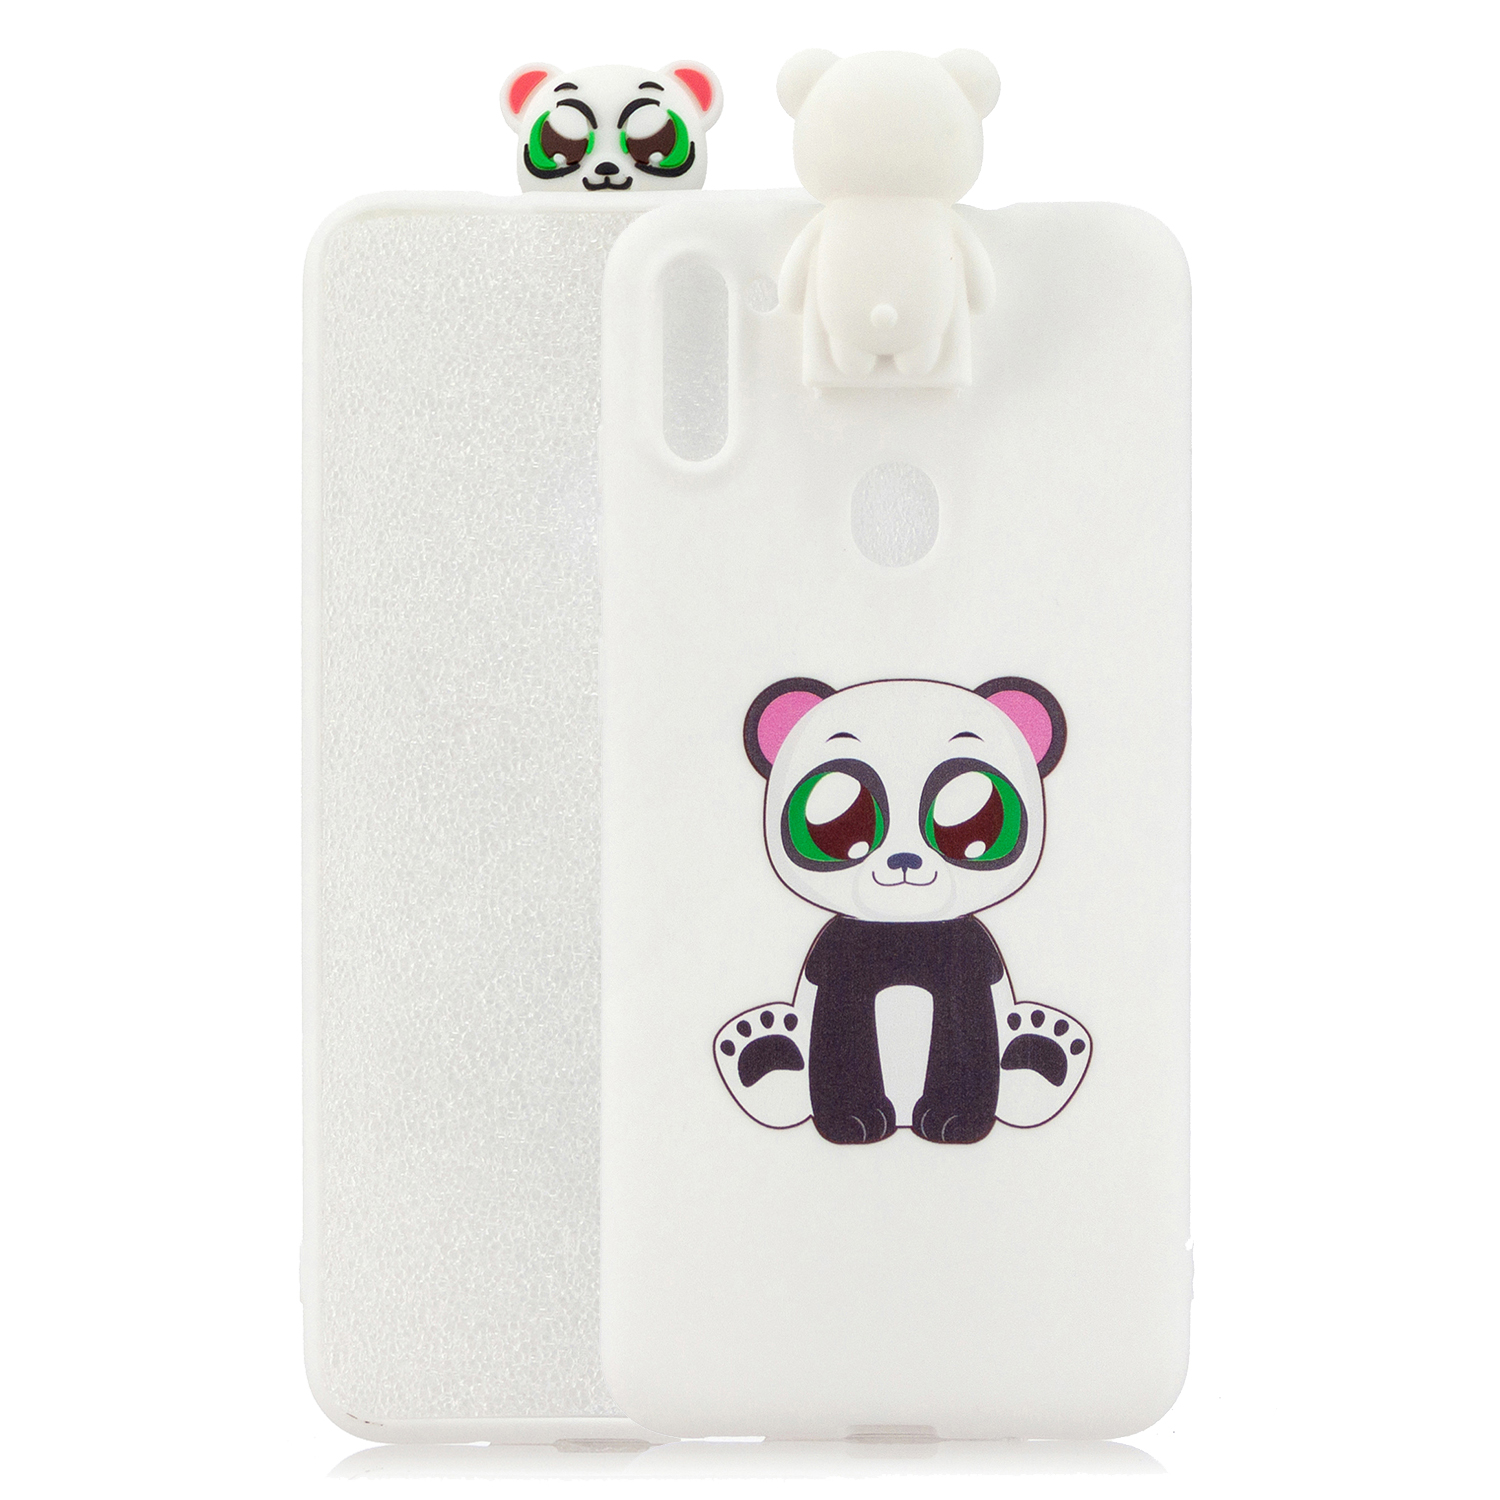 For Samsung A11 Soft TPU Back Cover Cartoon Painting Mobile Phone Case Shell with Bracket panda